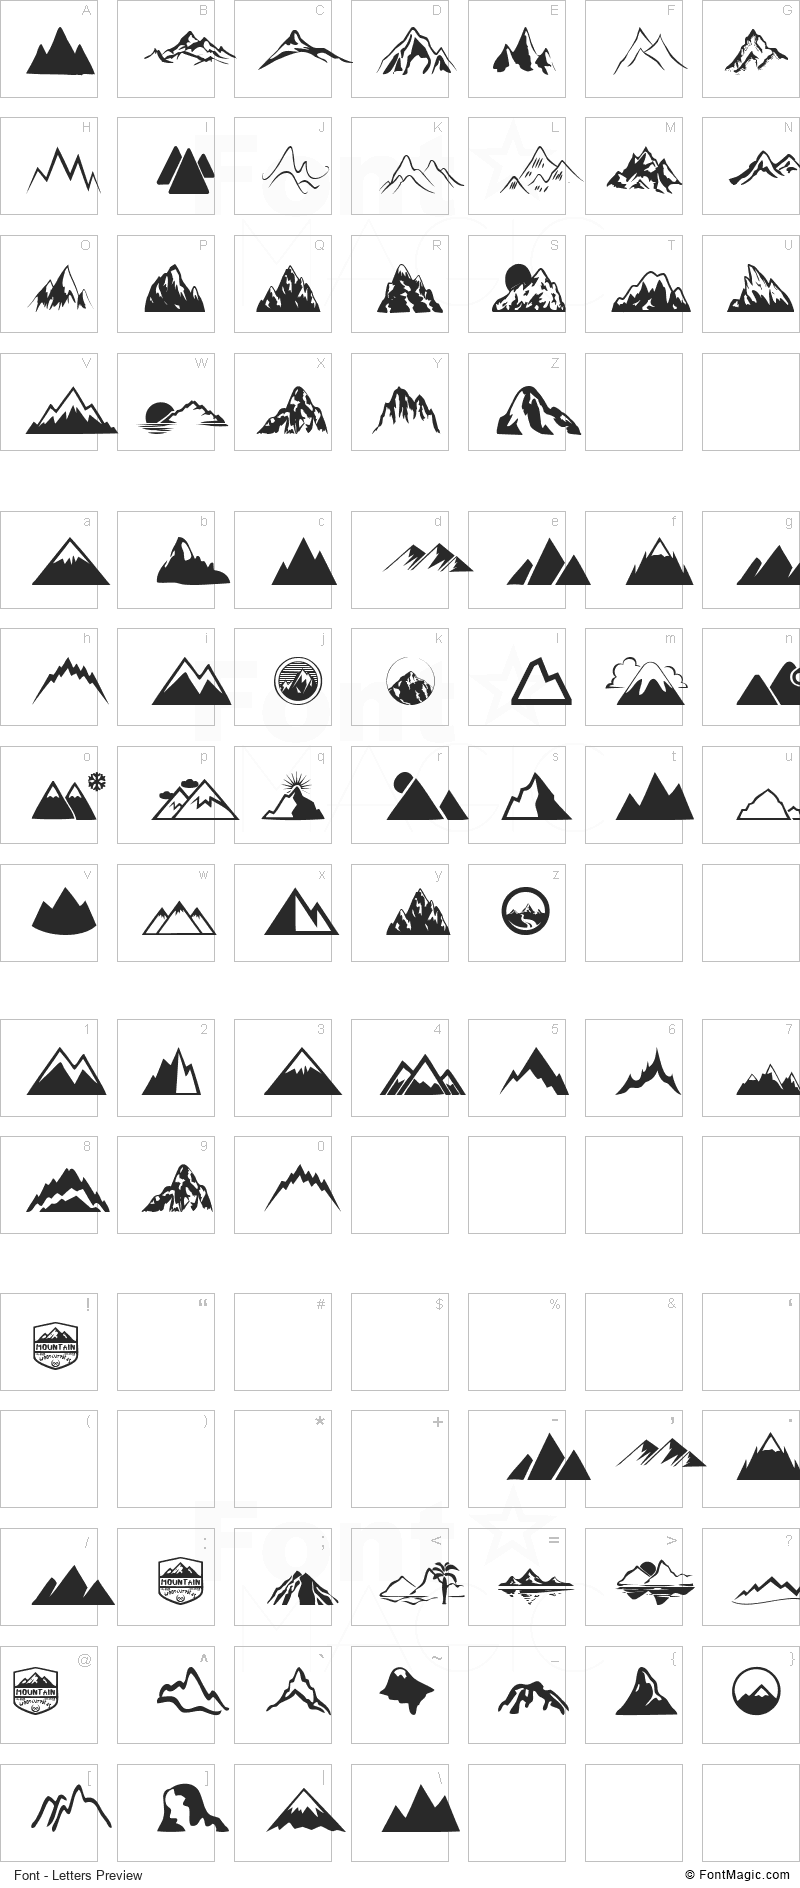 Mountain Font - All Latters Preview Chart